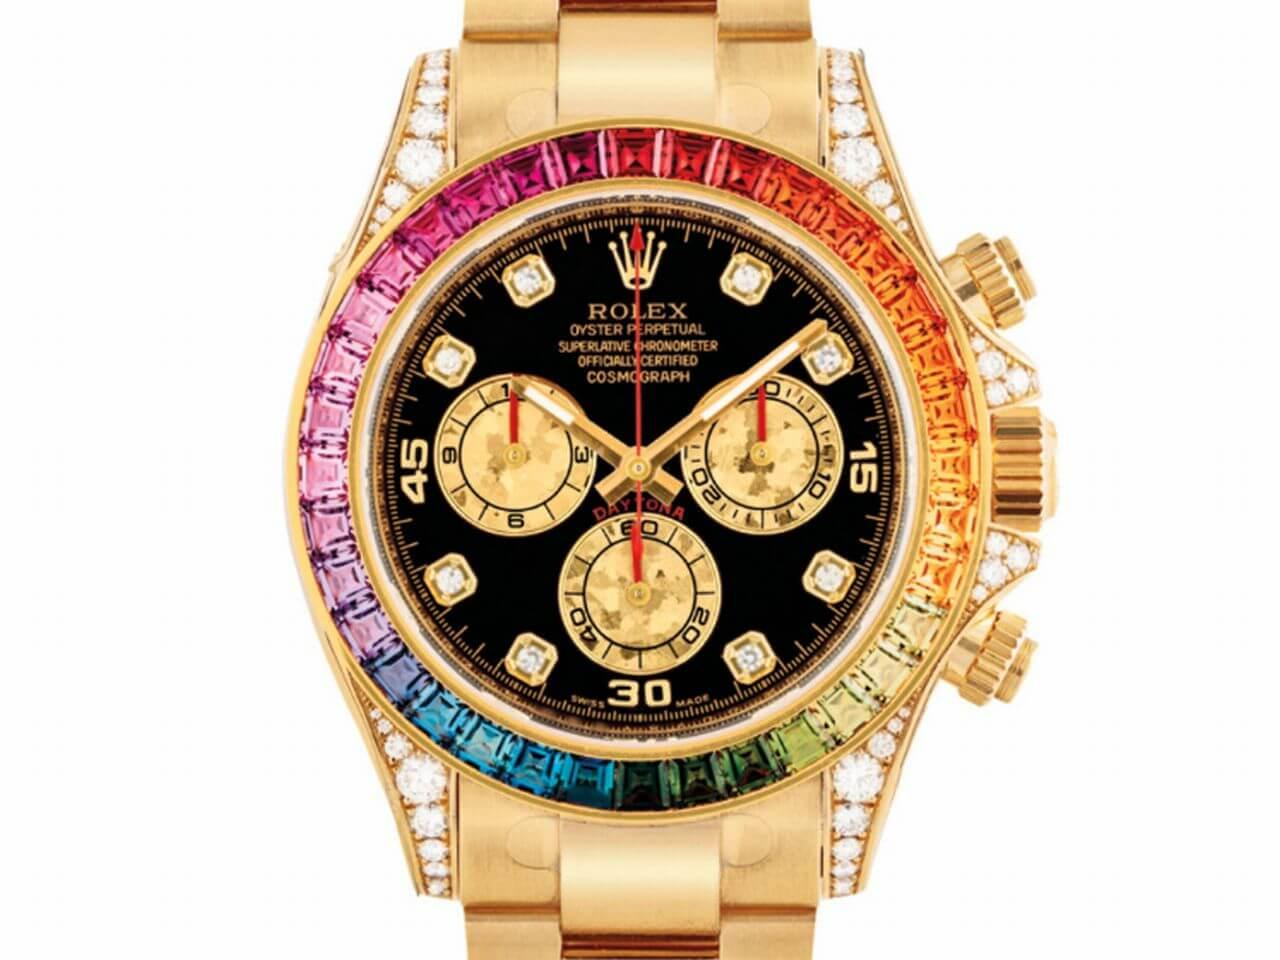 ROLEX REF. 116598RBOW